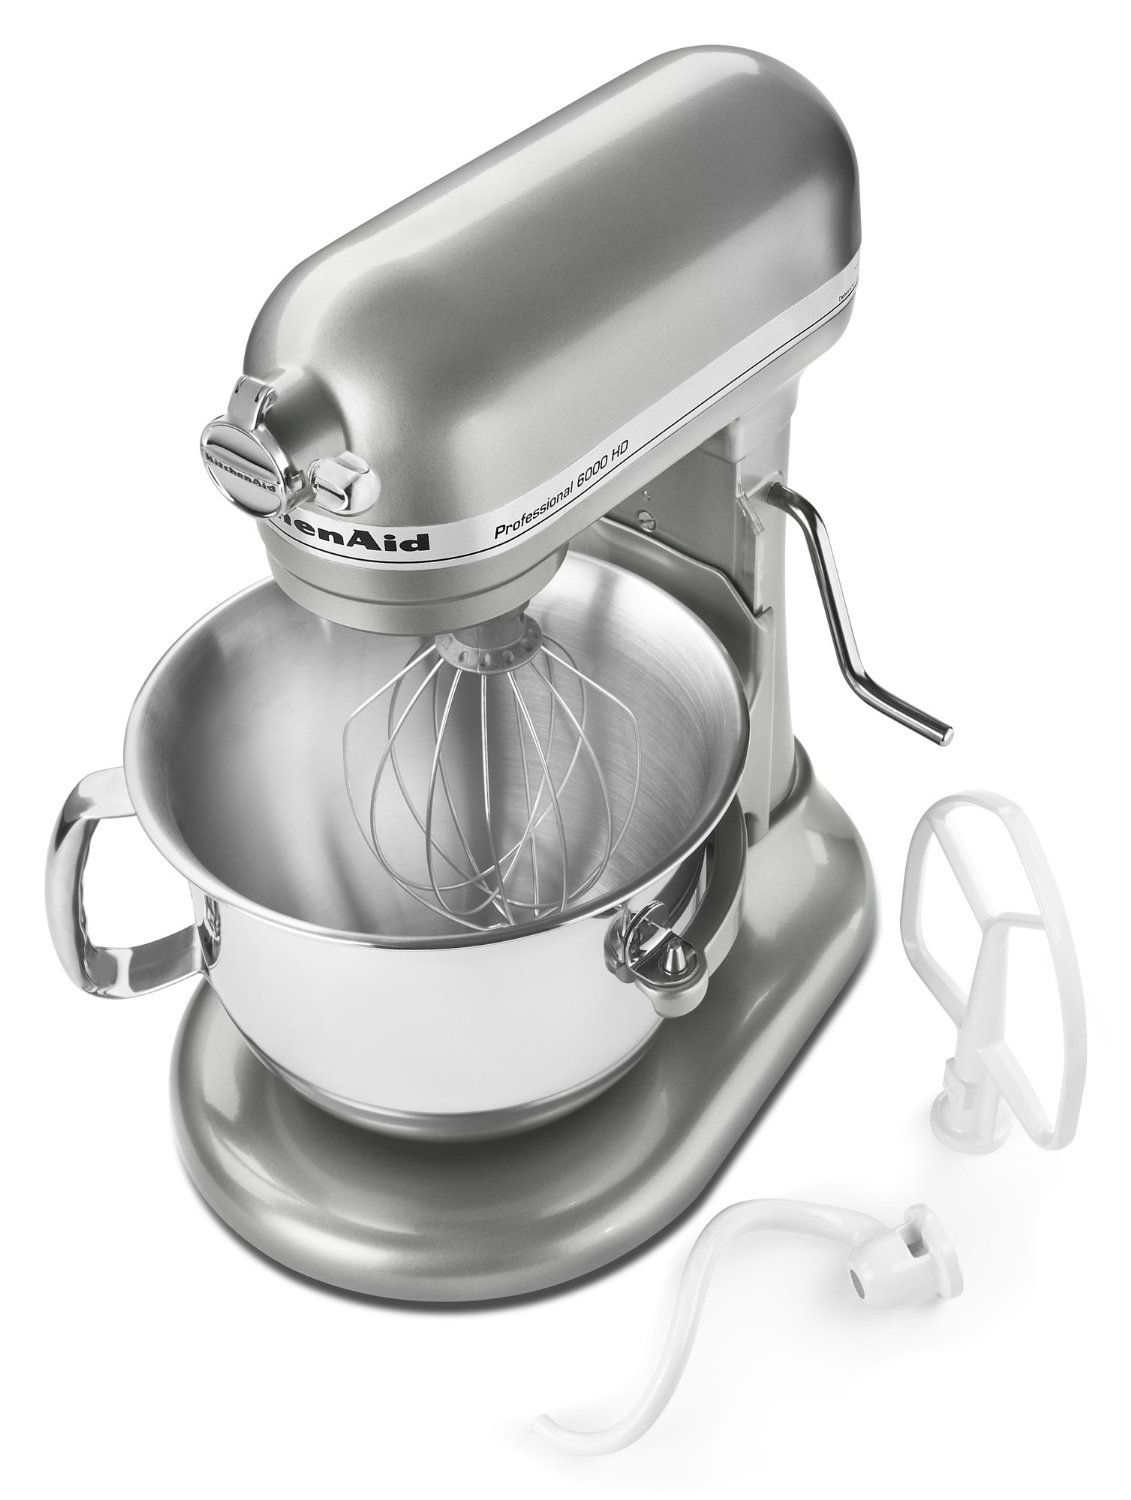 Heres the contour silver pro 6000 hd mixer by kitchenaid